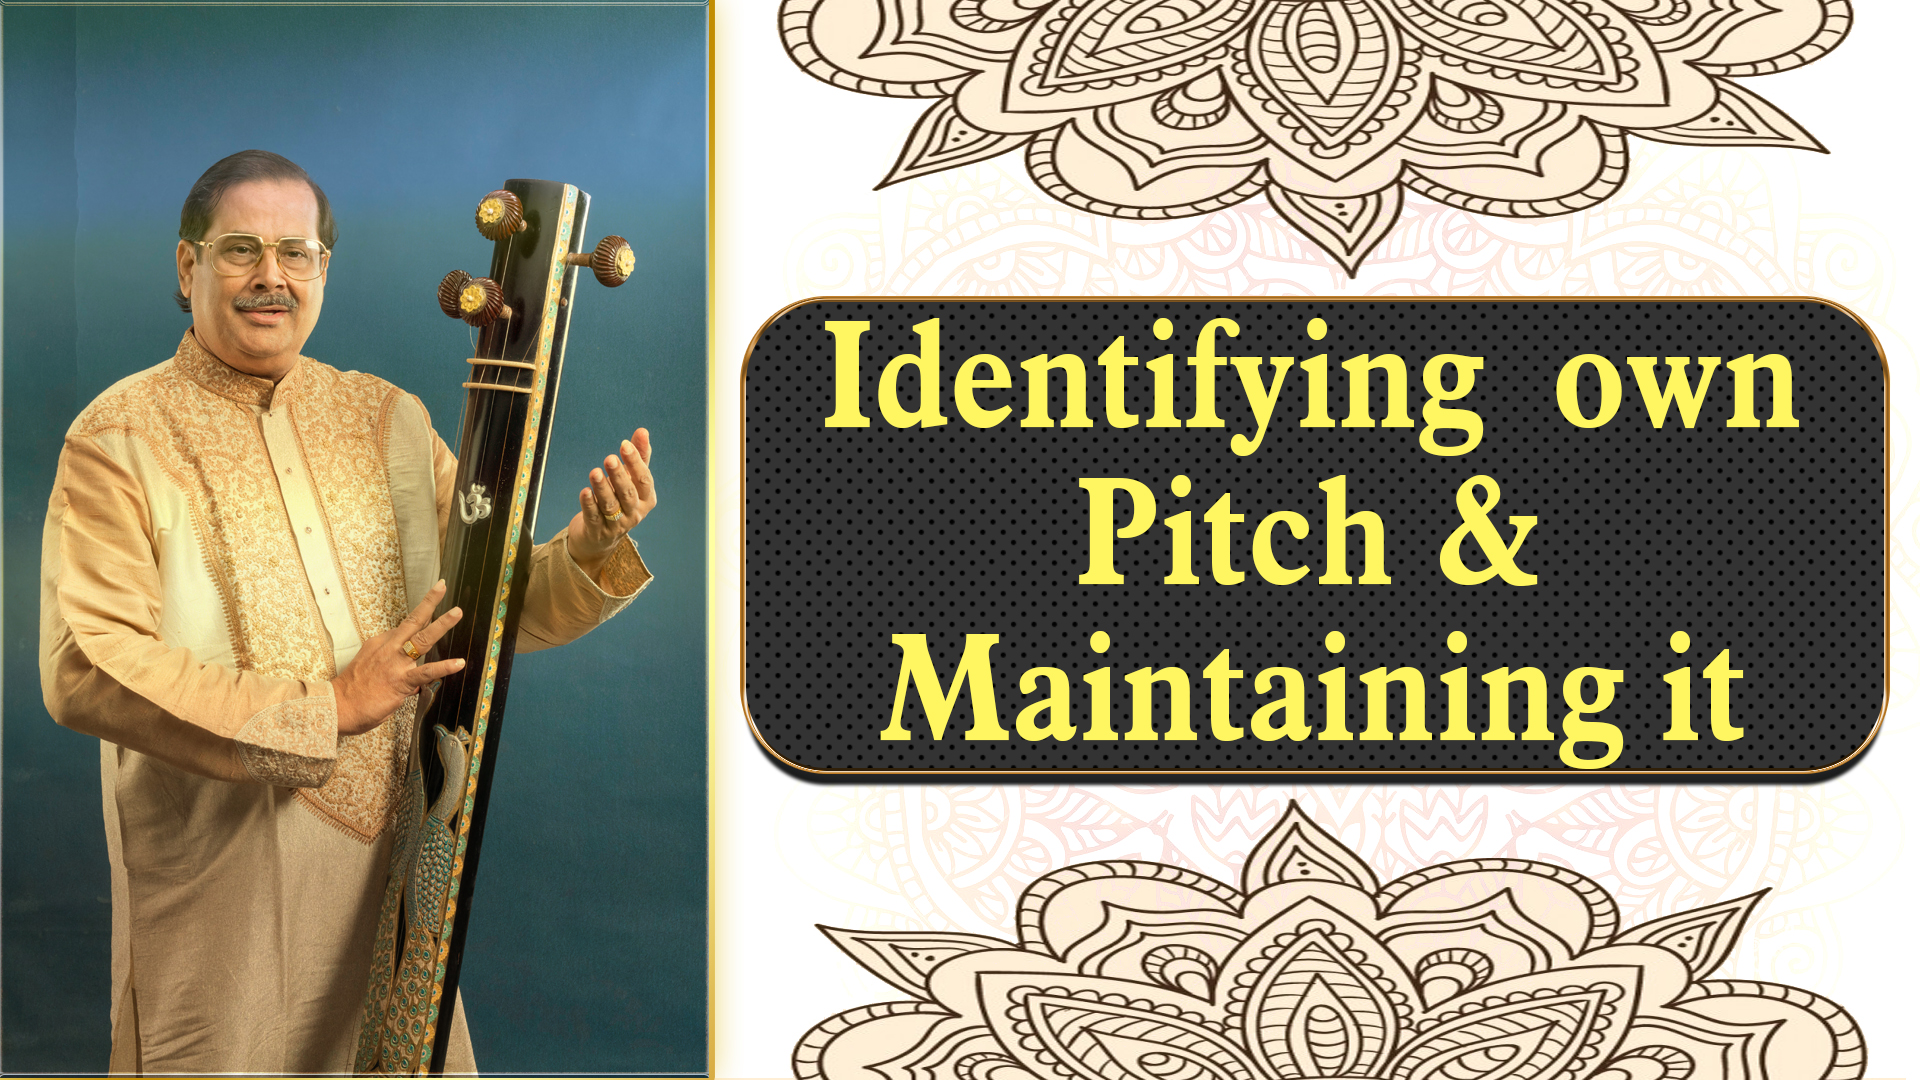 4- Identifying your own Pitch, Maintaining Vocal quality and Practice with Tanpura